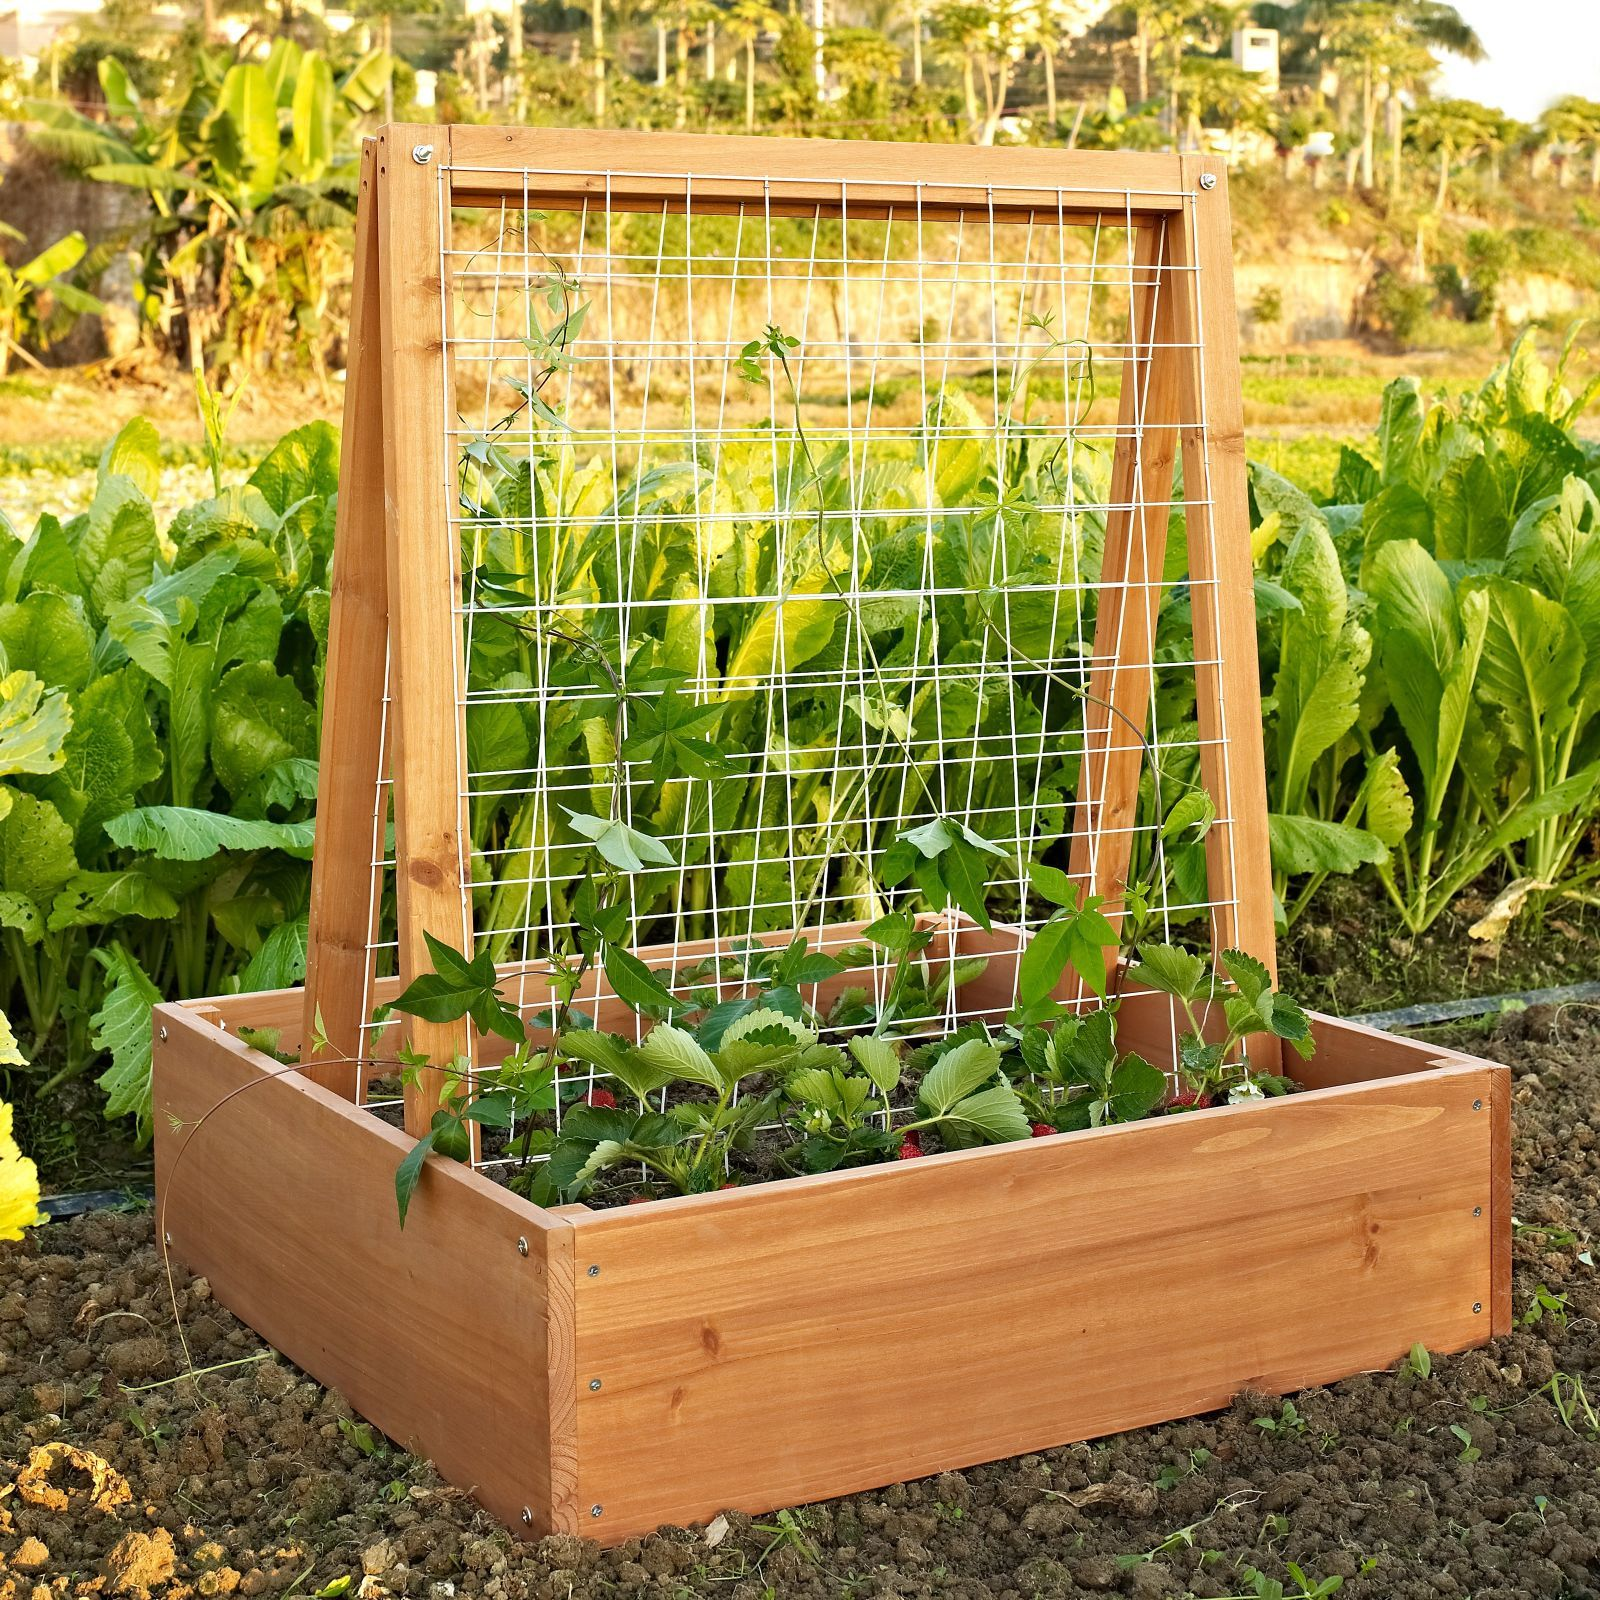 Raised Garden Bed Plants: 10 Raised Garden Beds That Fit Any Backyard Space